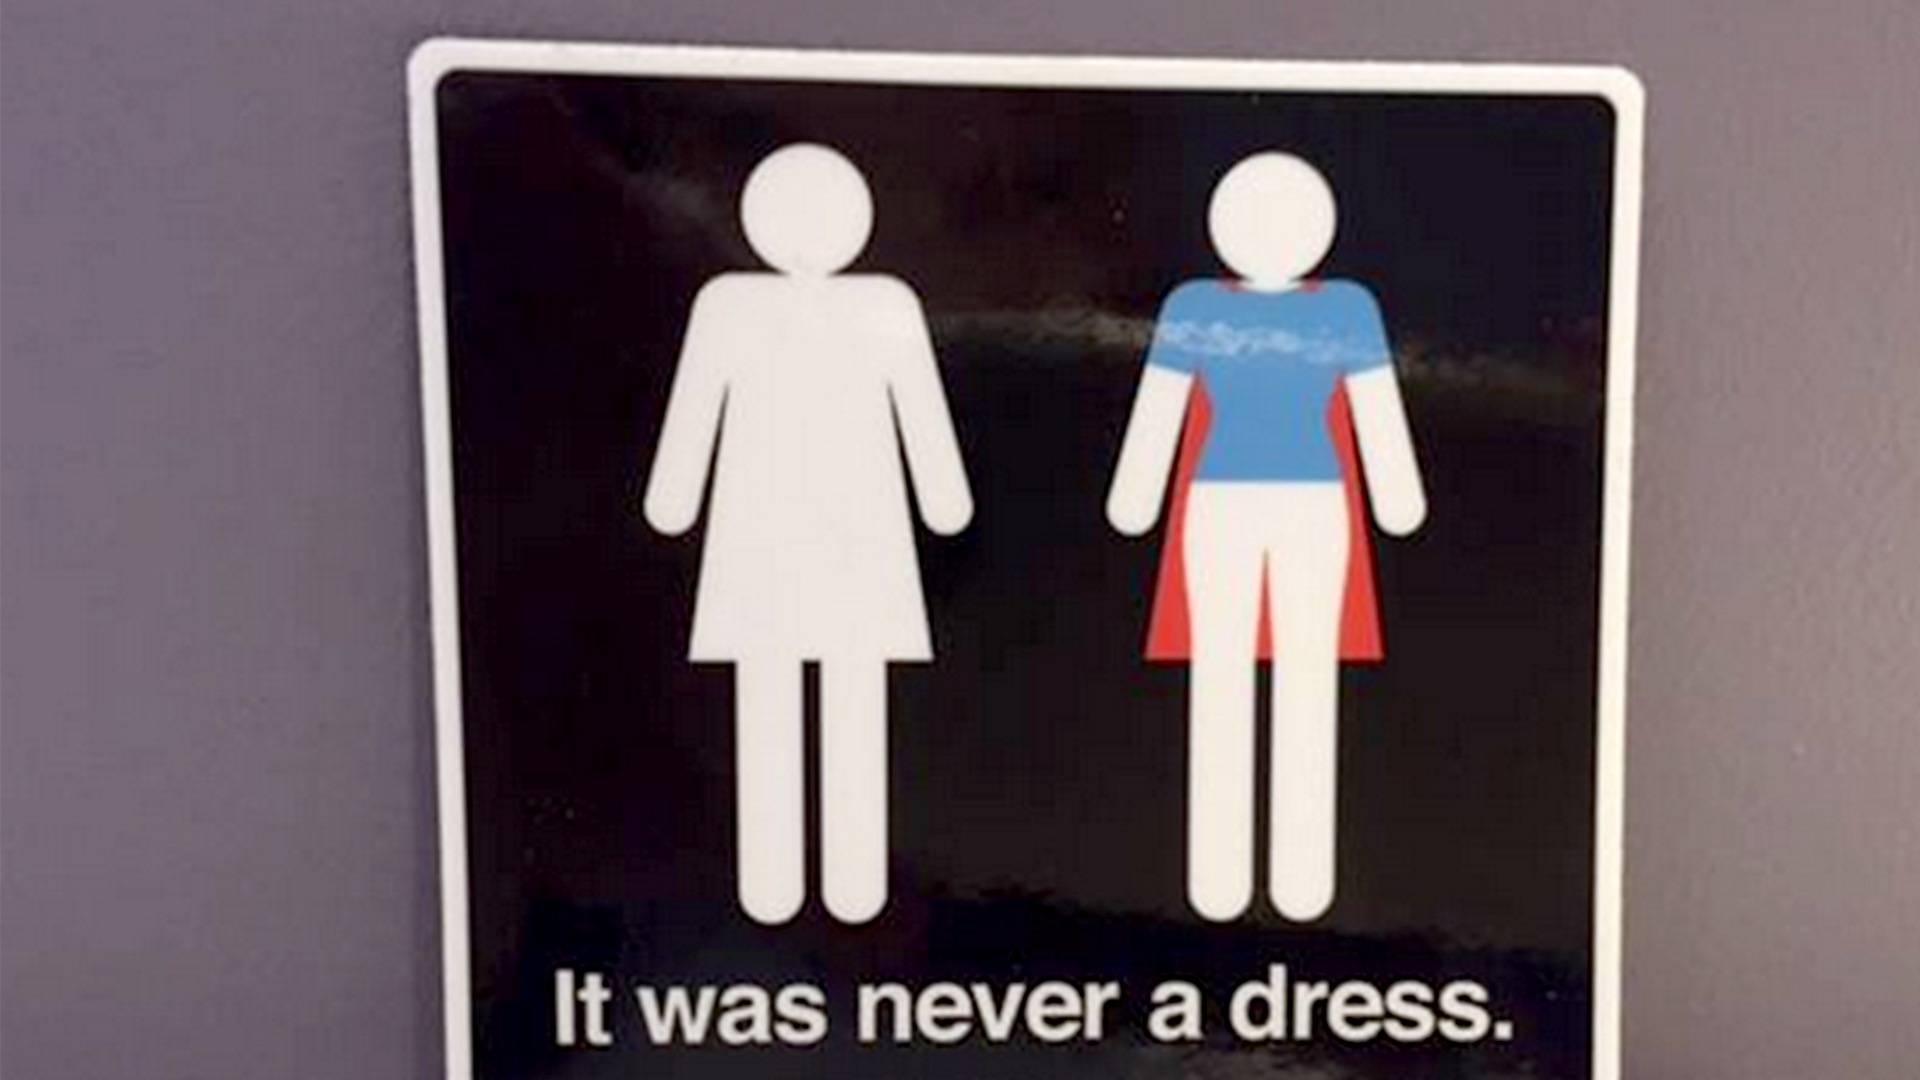 It was never a dress   Women s bathroom symbol gets a clever update ... f0d62cdc0f5d7